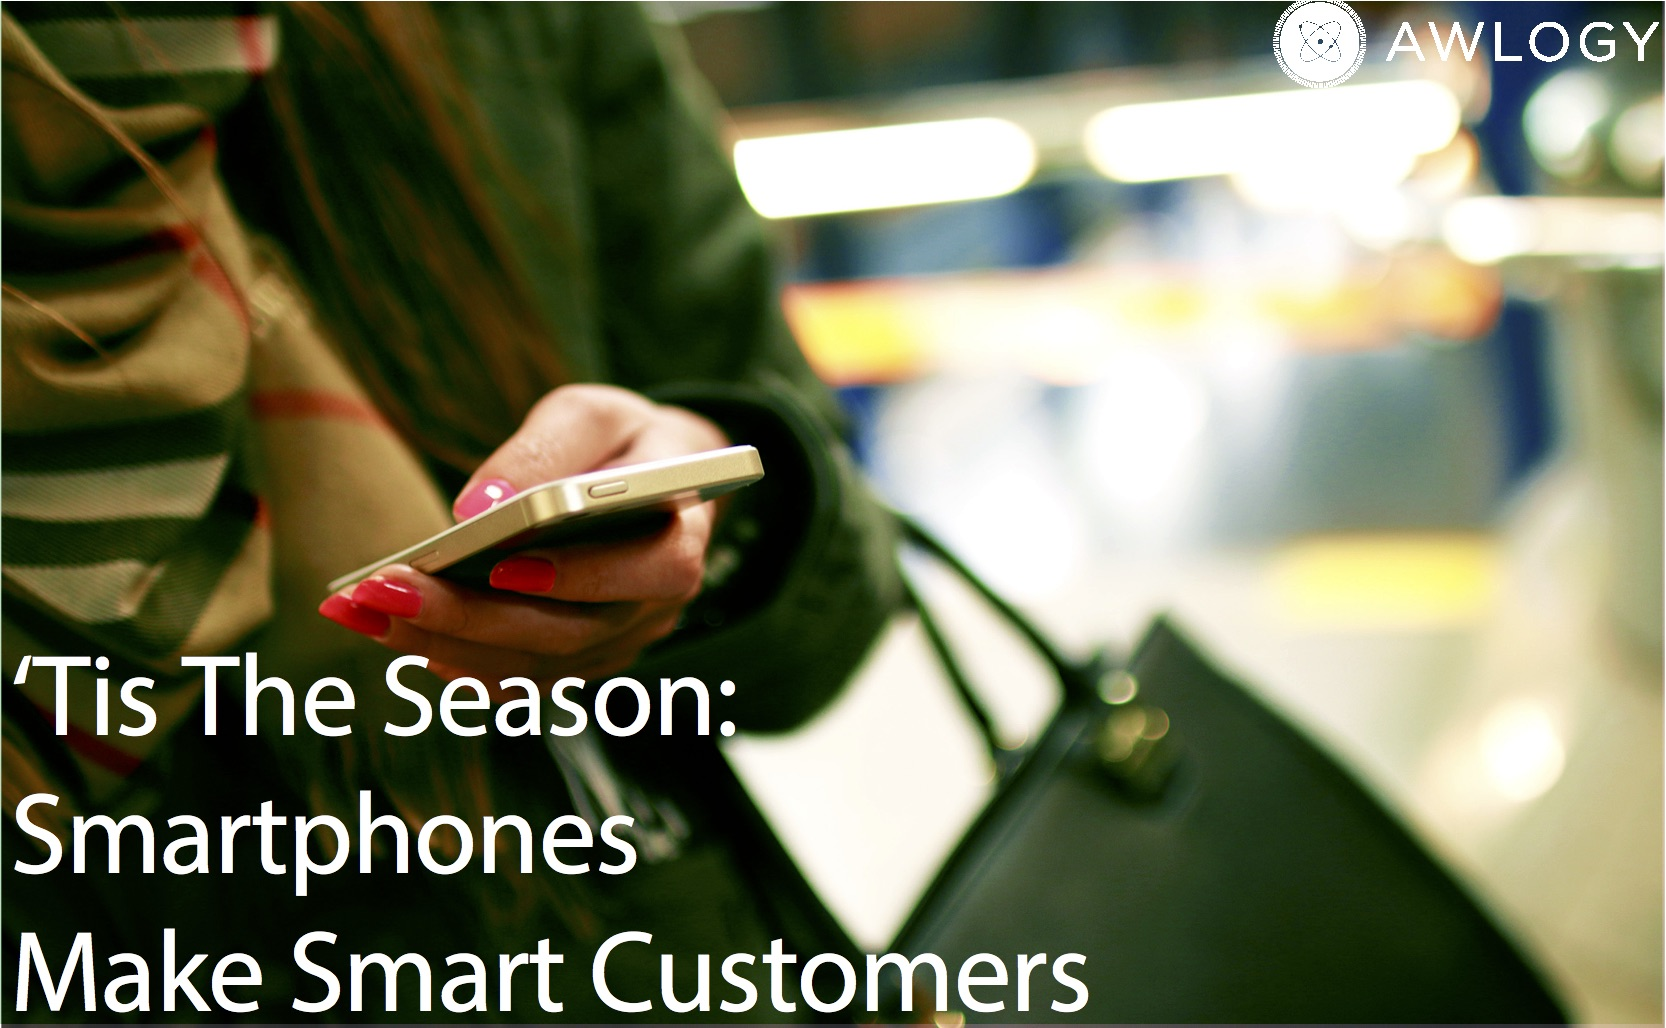 'Tis the Season: Mobile Experiences Make Engaged Customers